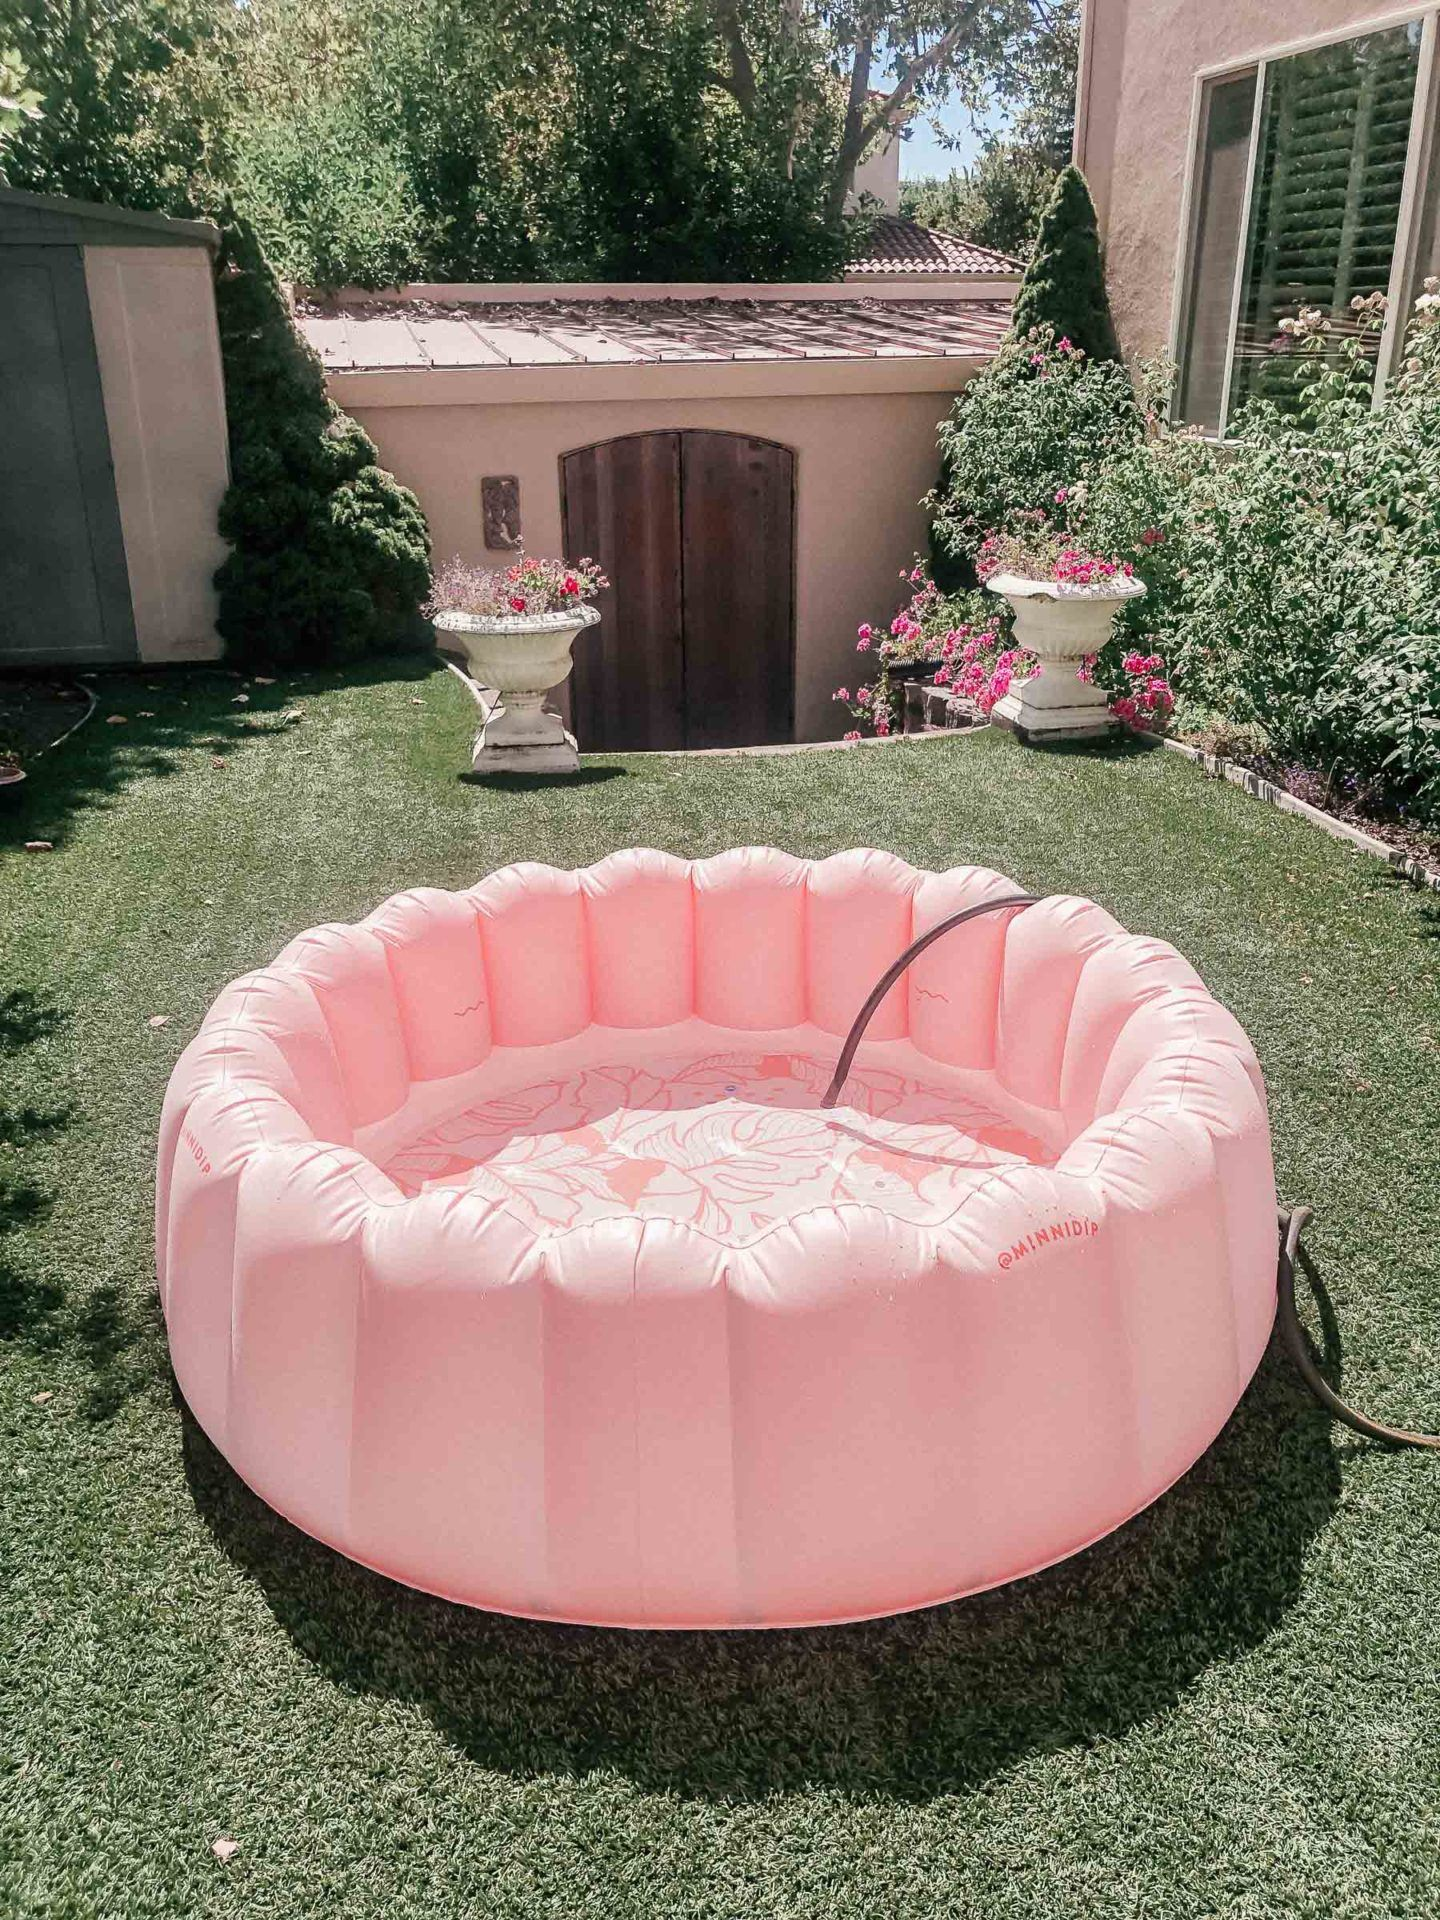 Cute inflatable pools, by lifestyle blogger What The Fab